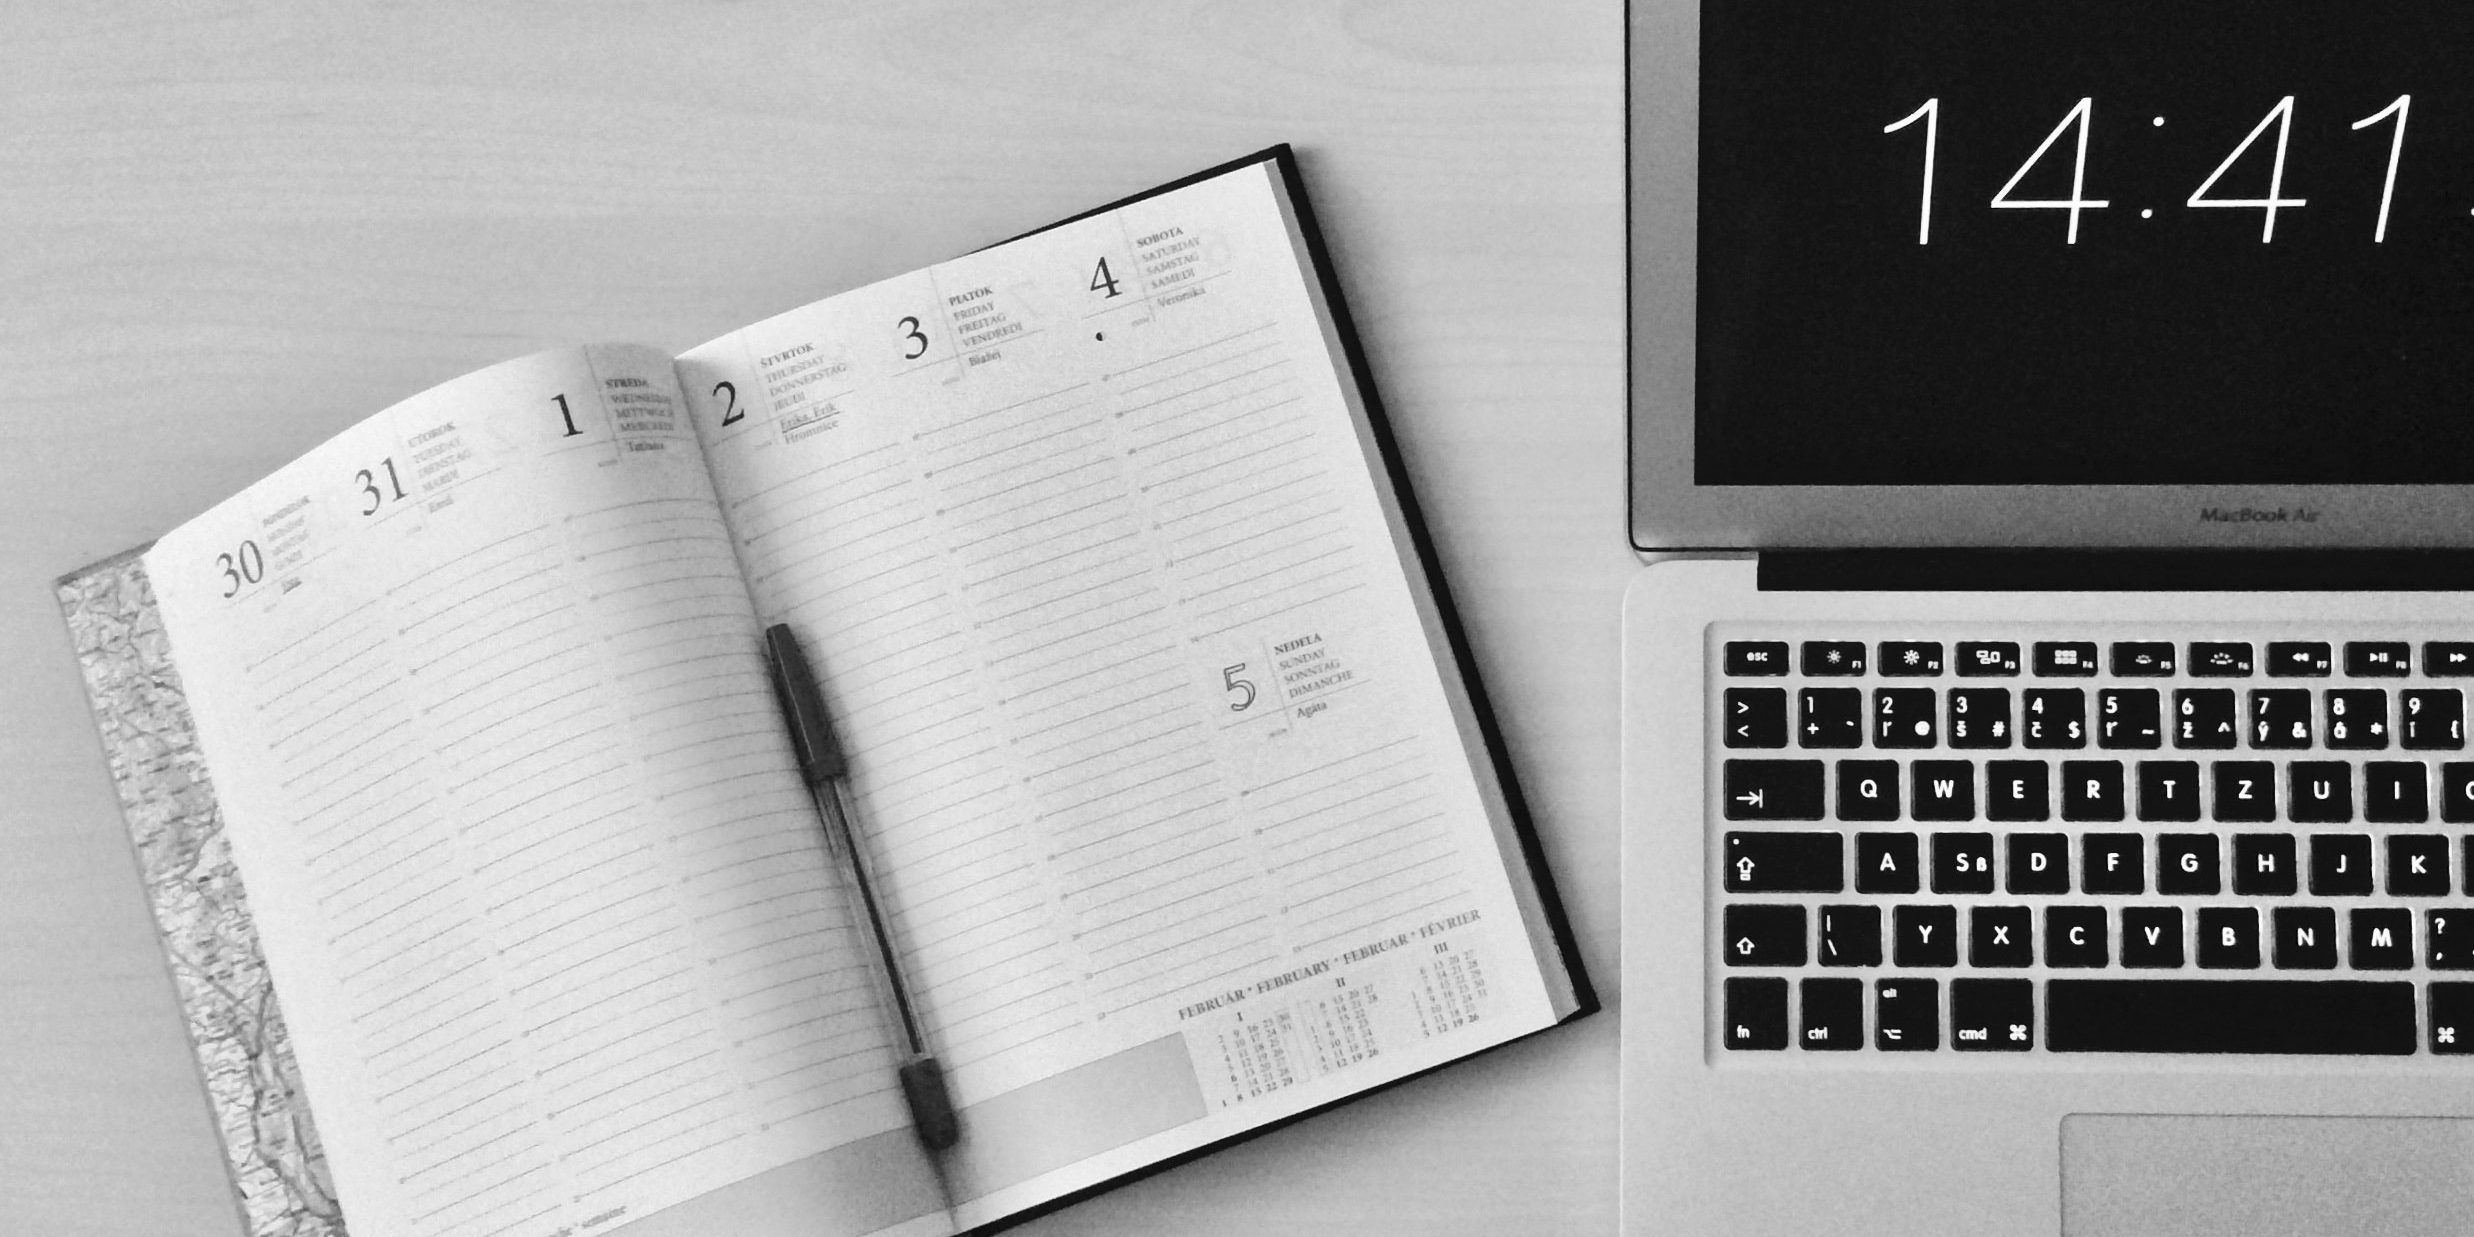 get motivated - Open laptop and open planner on a gray desk.